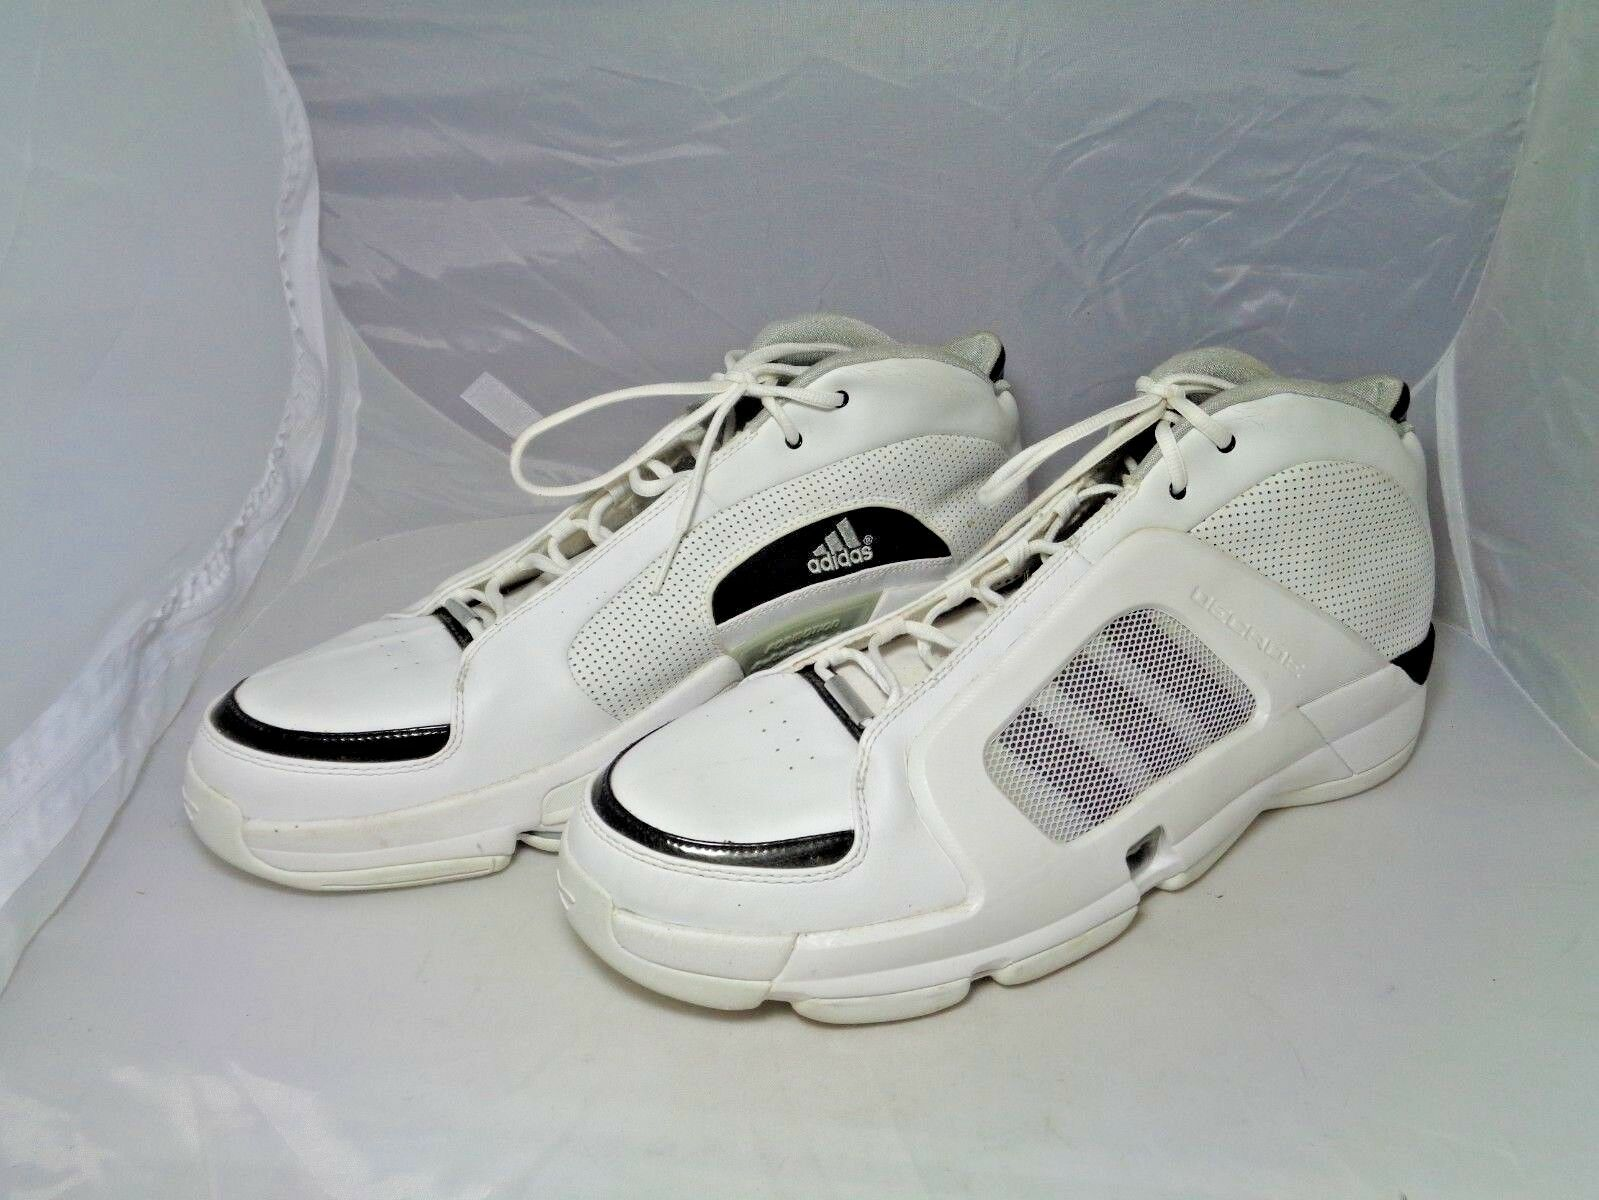 Adidas White and Black Basketball Shoes Size 19 - EUC